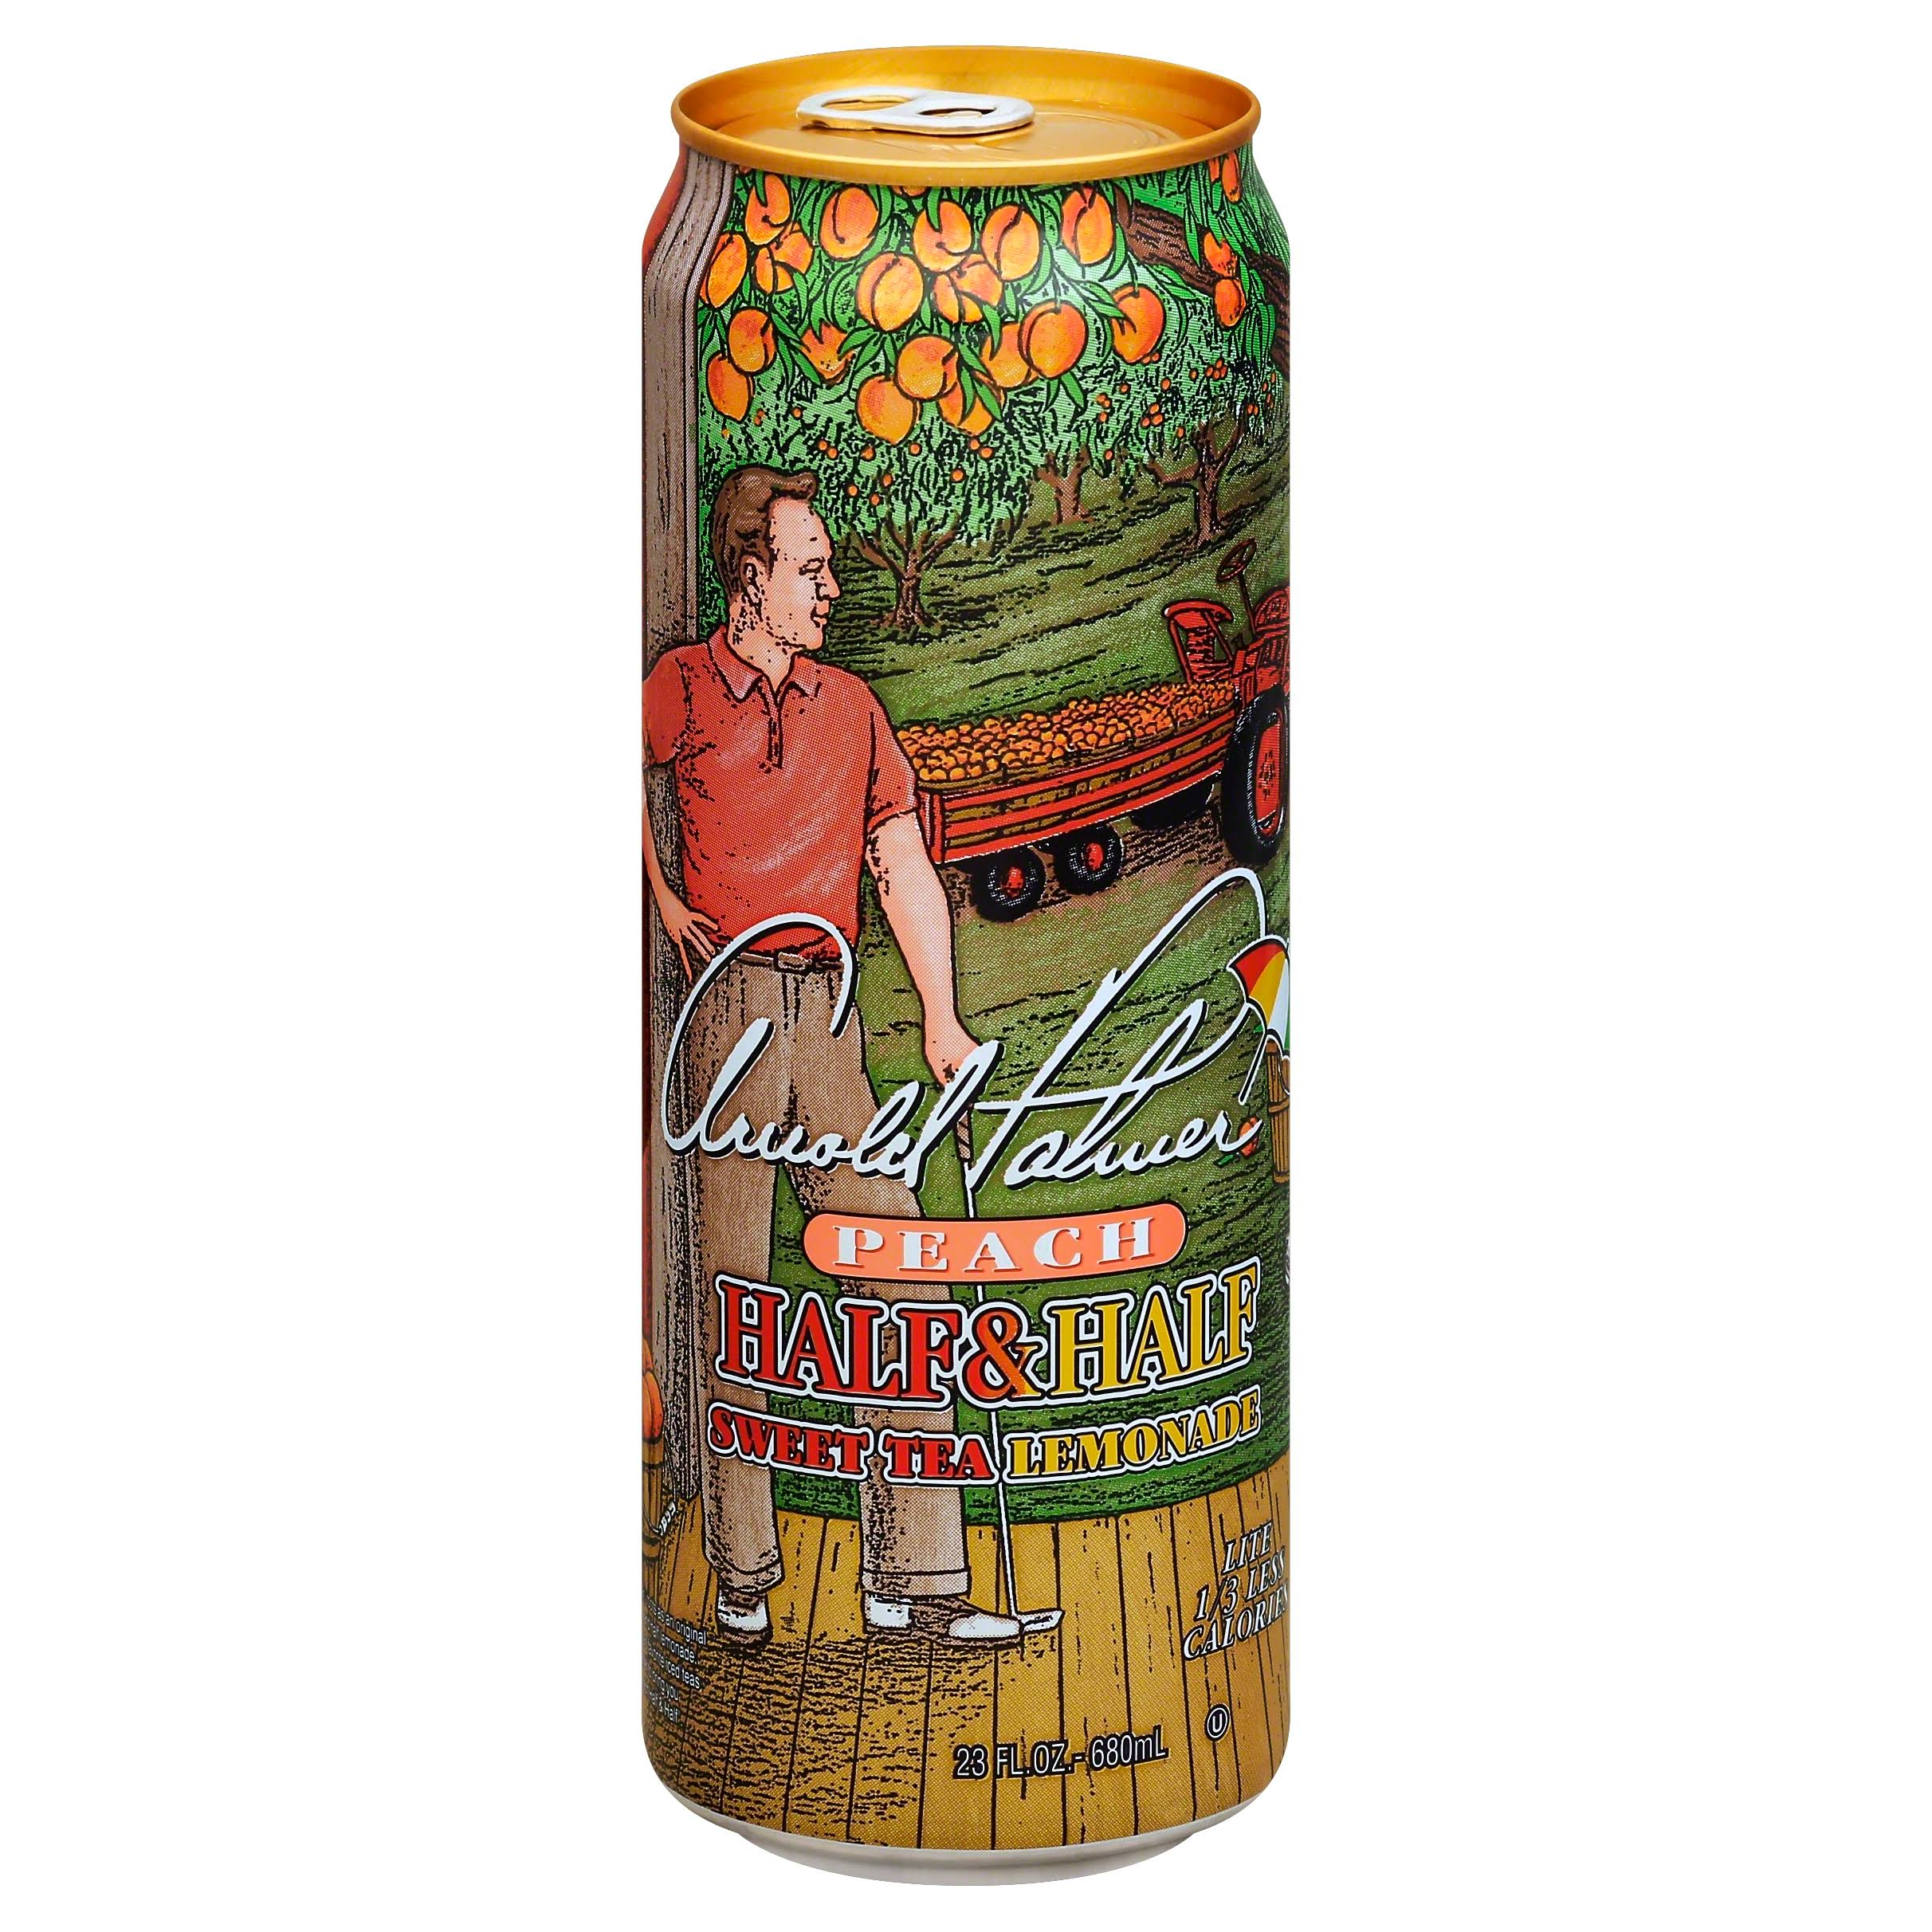 Arizona Arnold Palmer Half and Half Sweet Tea Lemonade - 23oz, Peach